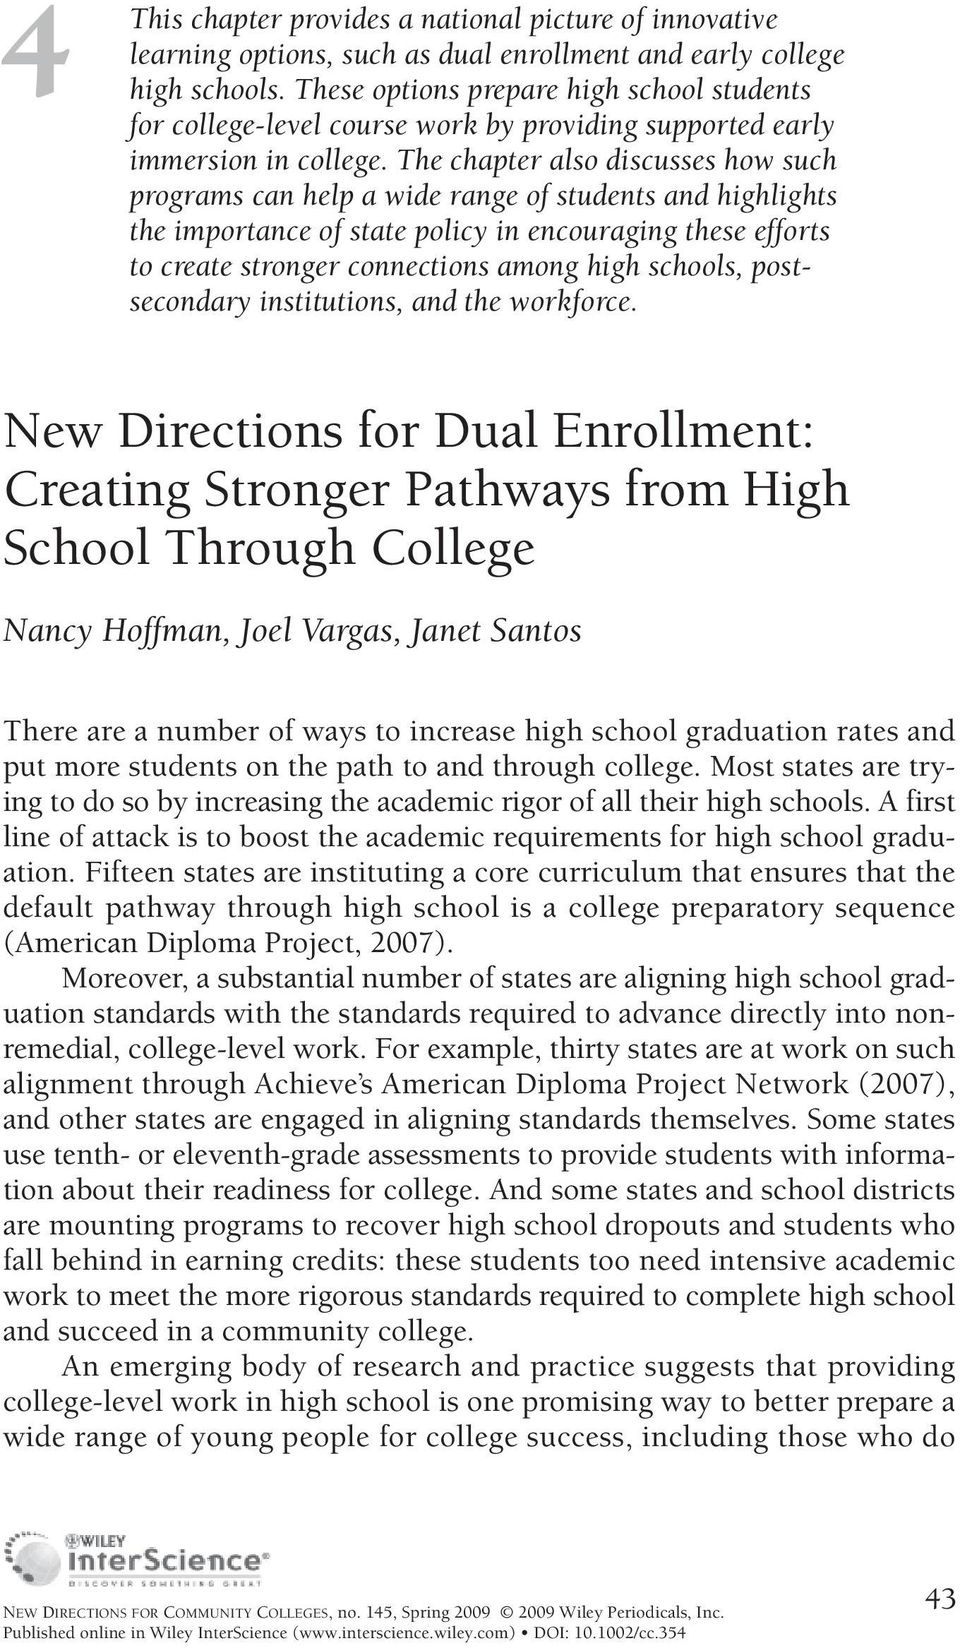 The chapter also discusses how such programs can help a wide range of students and highlights the importance of state policy in encouraging these efforts to create stronger connections among high